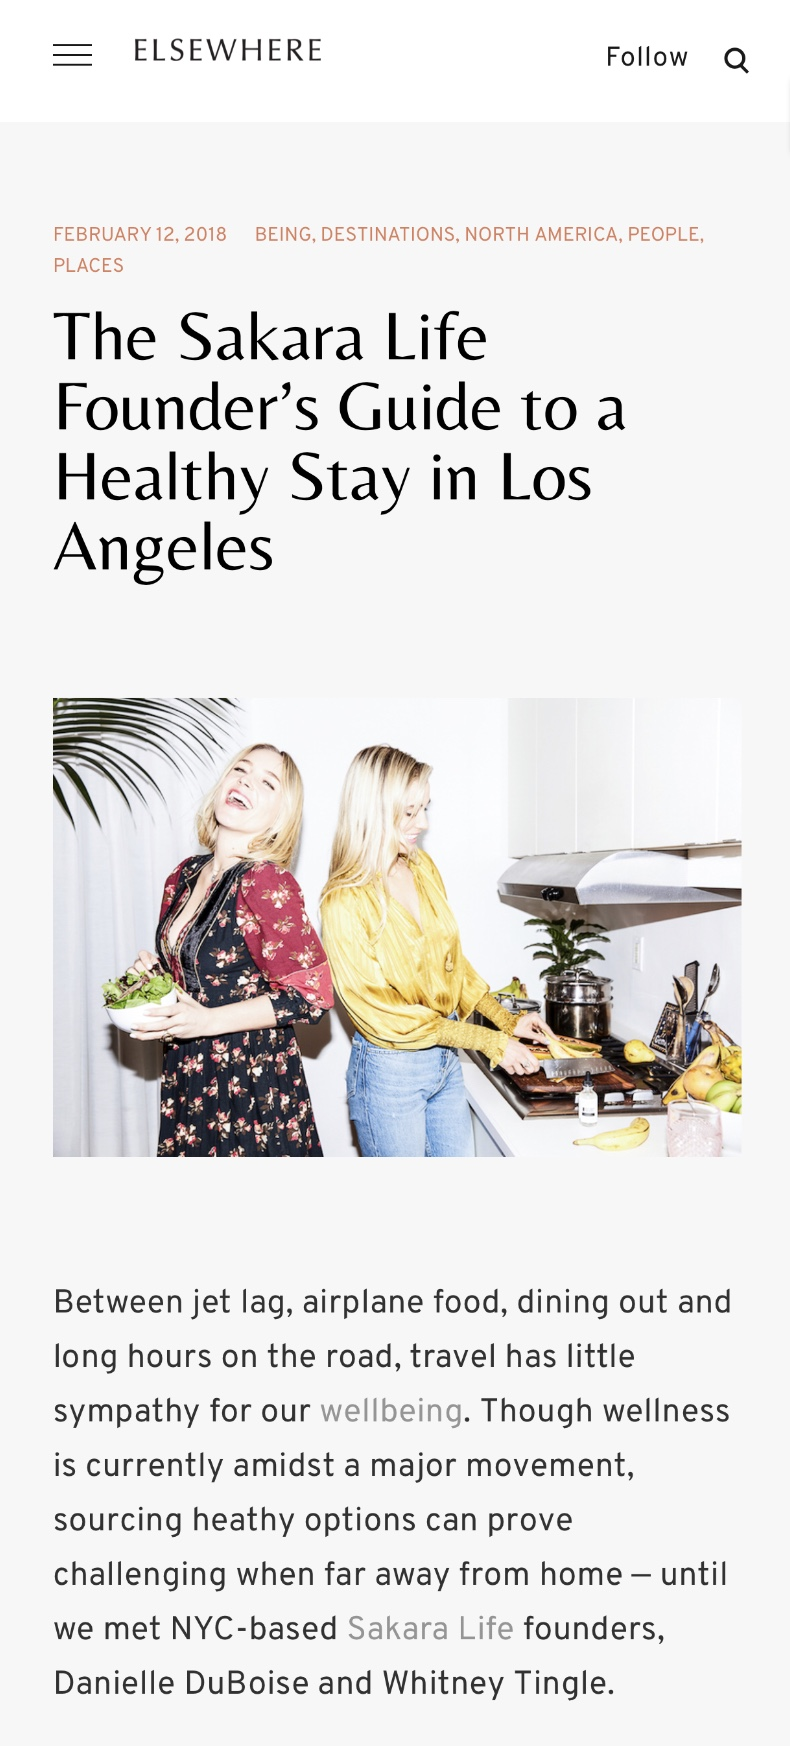 ELSEWHERE: THE SAKARA LIFE FOUNDER'S GUIDE TO A HEALTHY STAY IN LOS ANGELES